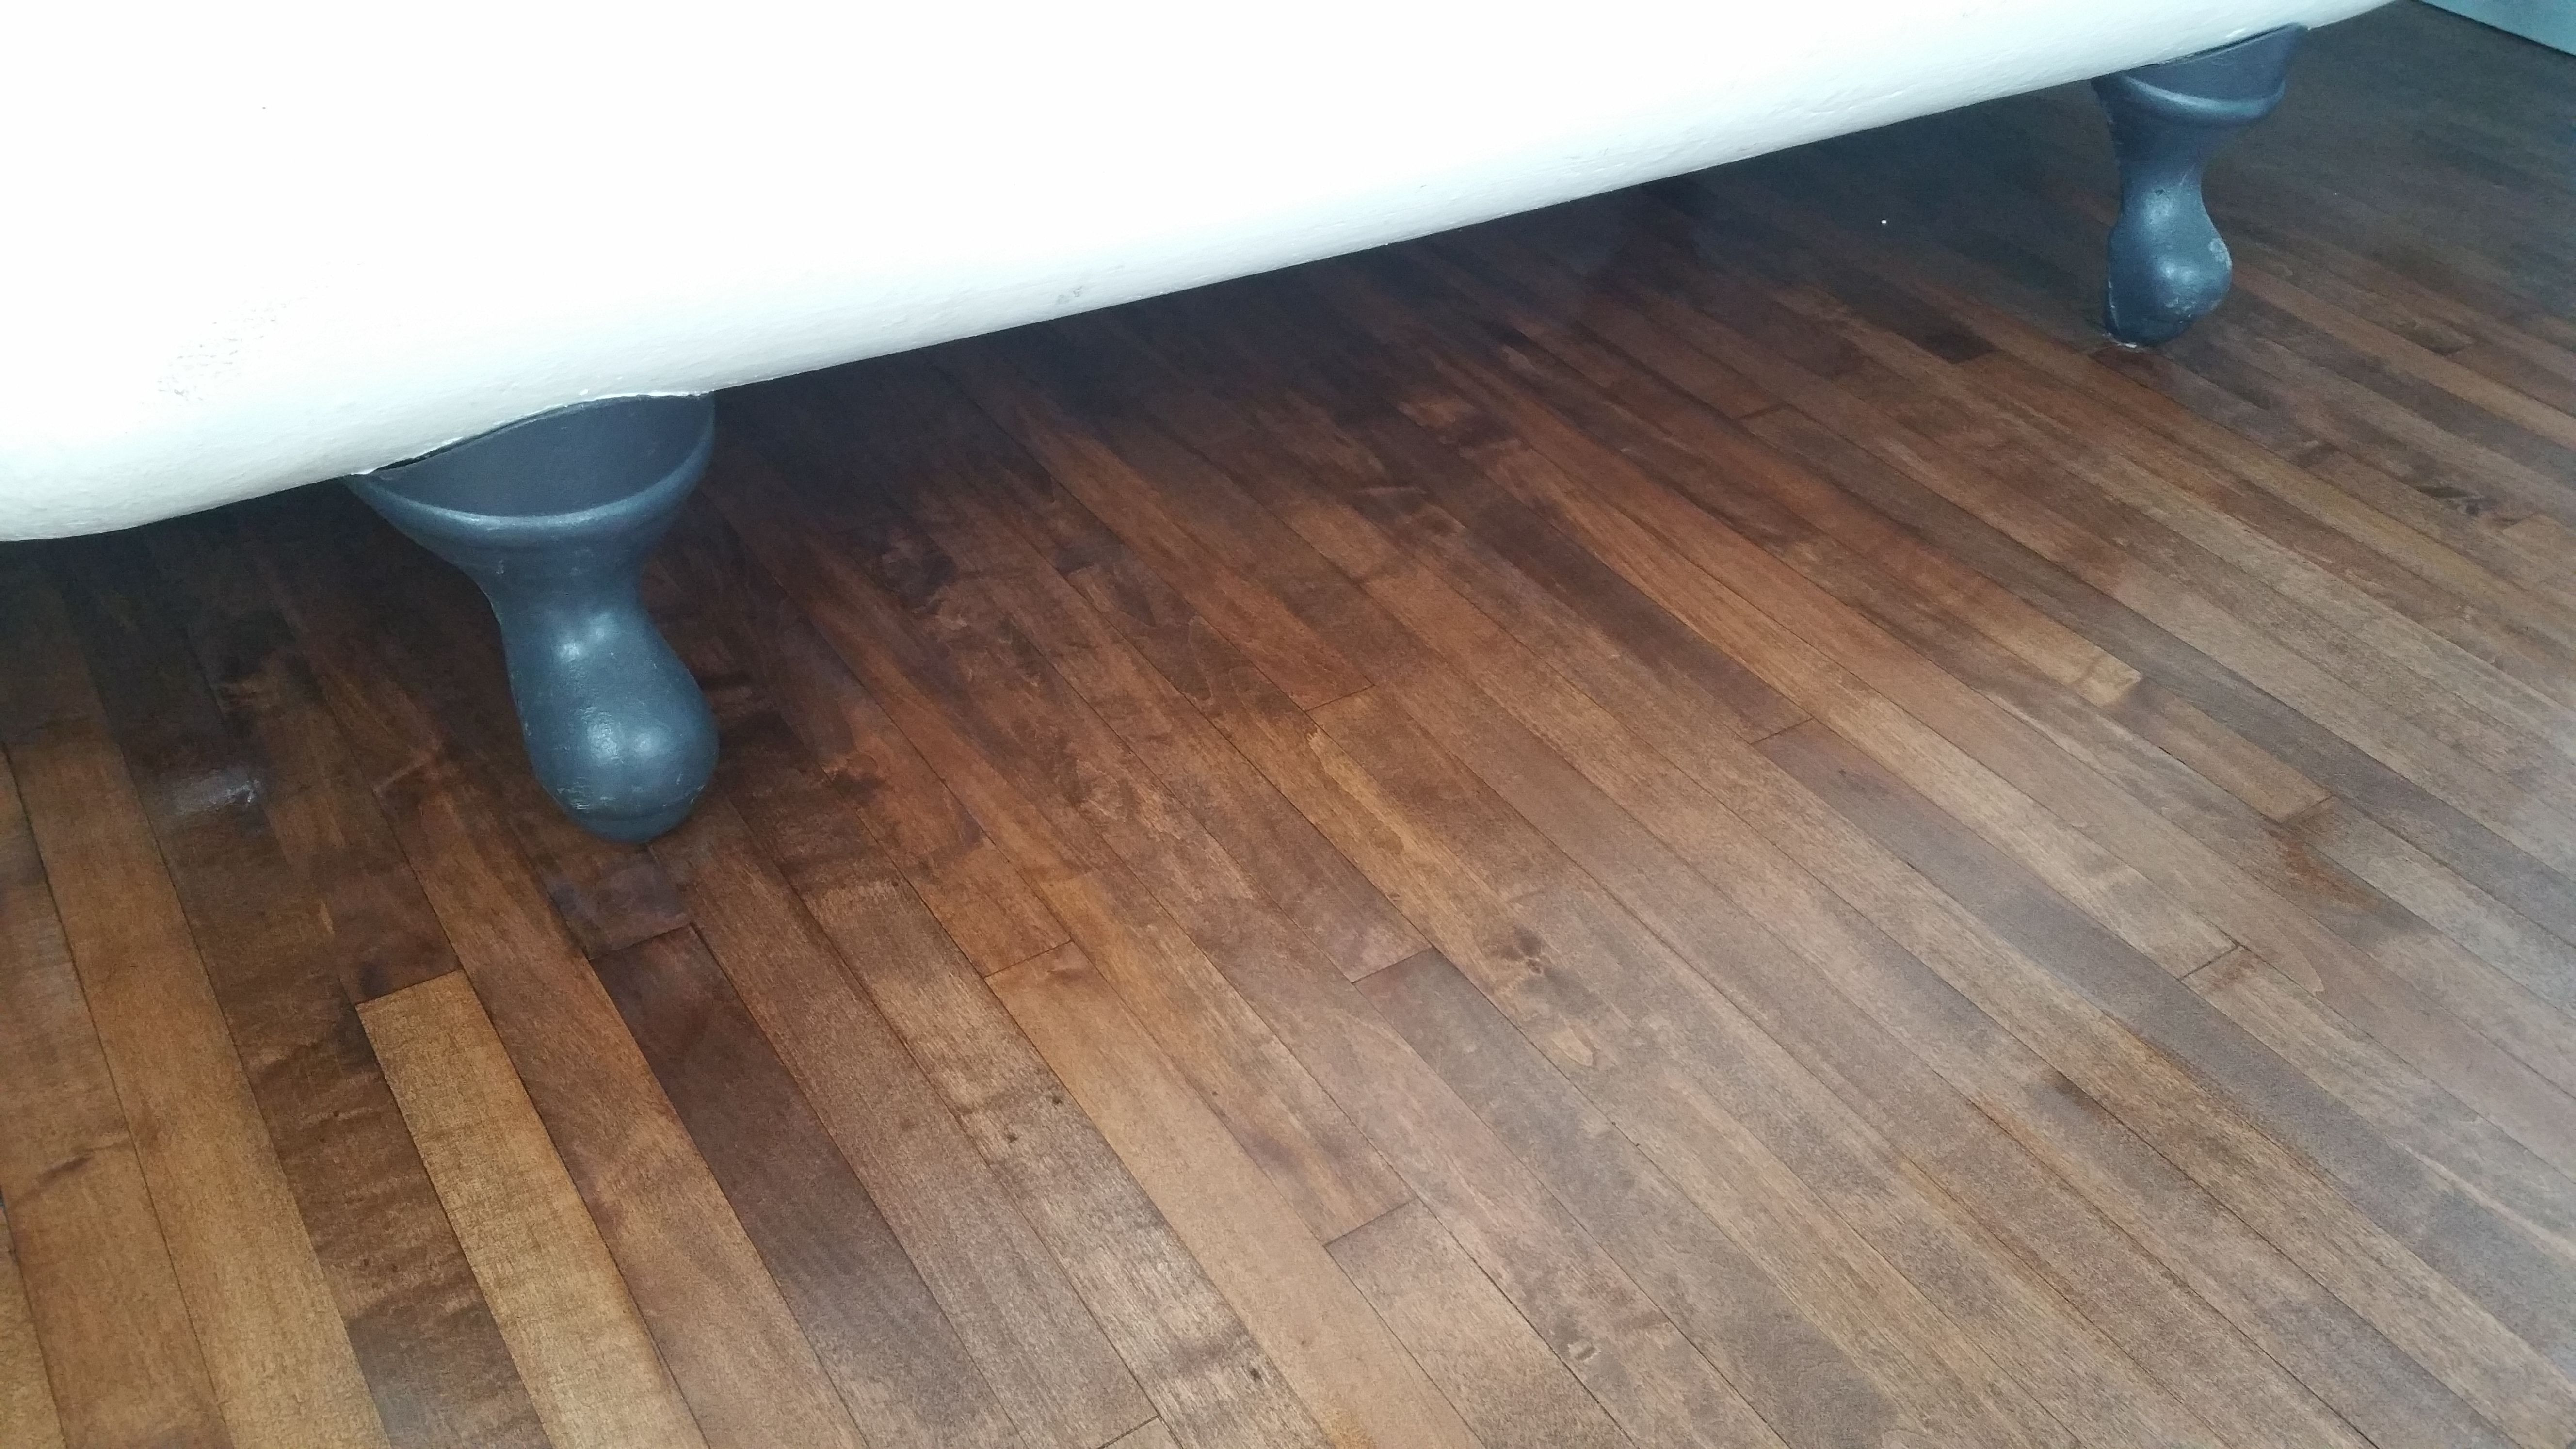 hardwood flooring sale calgary of 1 1 2 maple in a 100 year old calgary home was in horrible shape within 1 1 2 maple in a 100 year old calgary home was in horrible shape but sanded up and stained beautifully